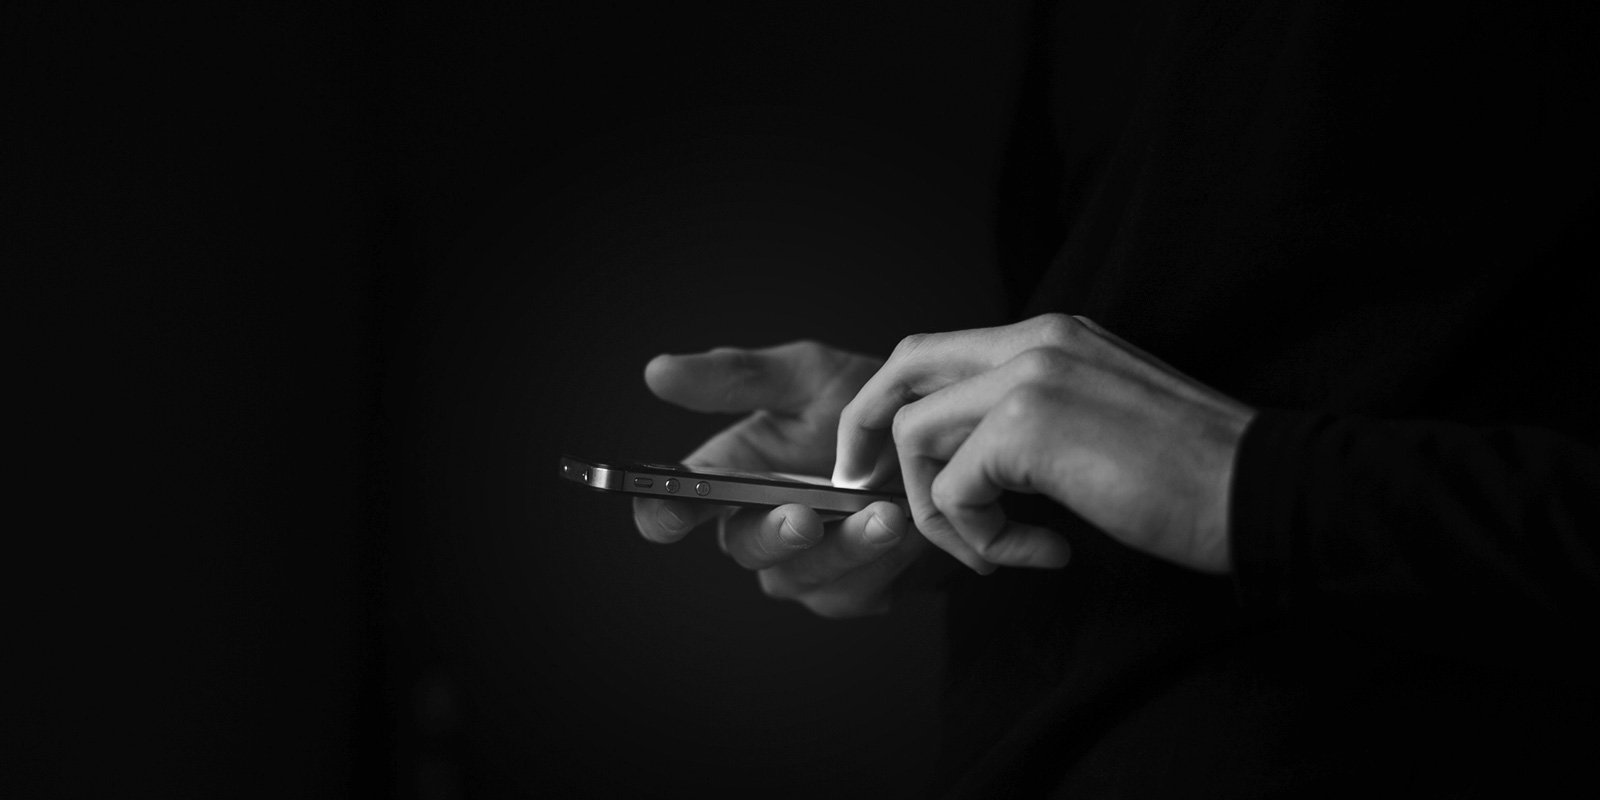 Close up photo of a pair of hands using a smartphone